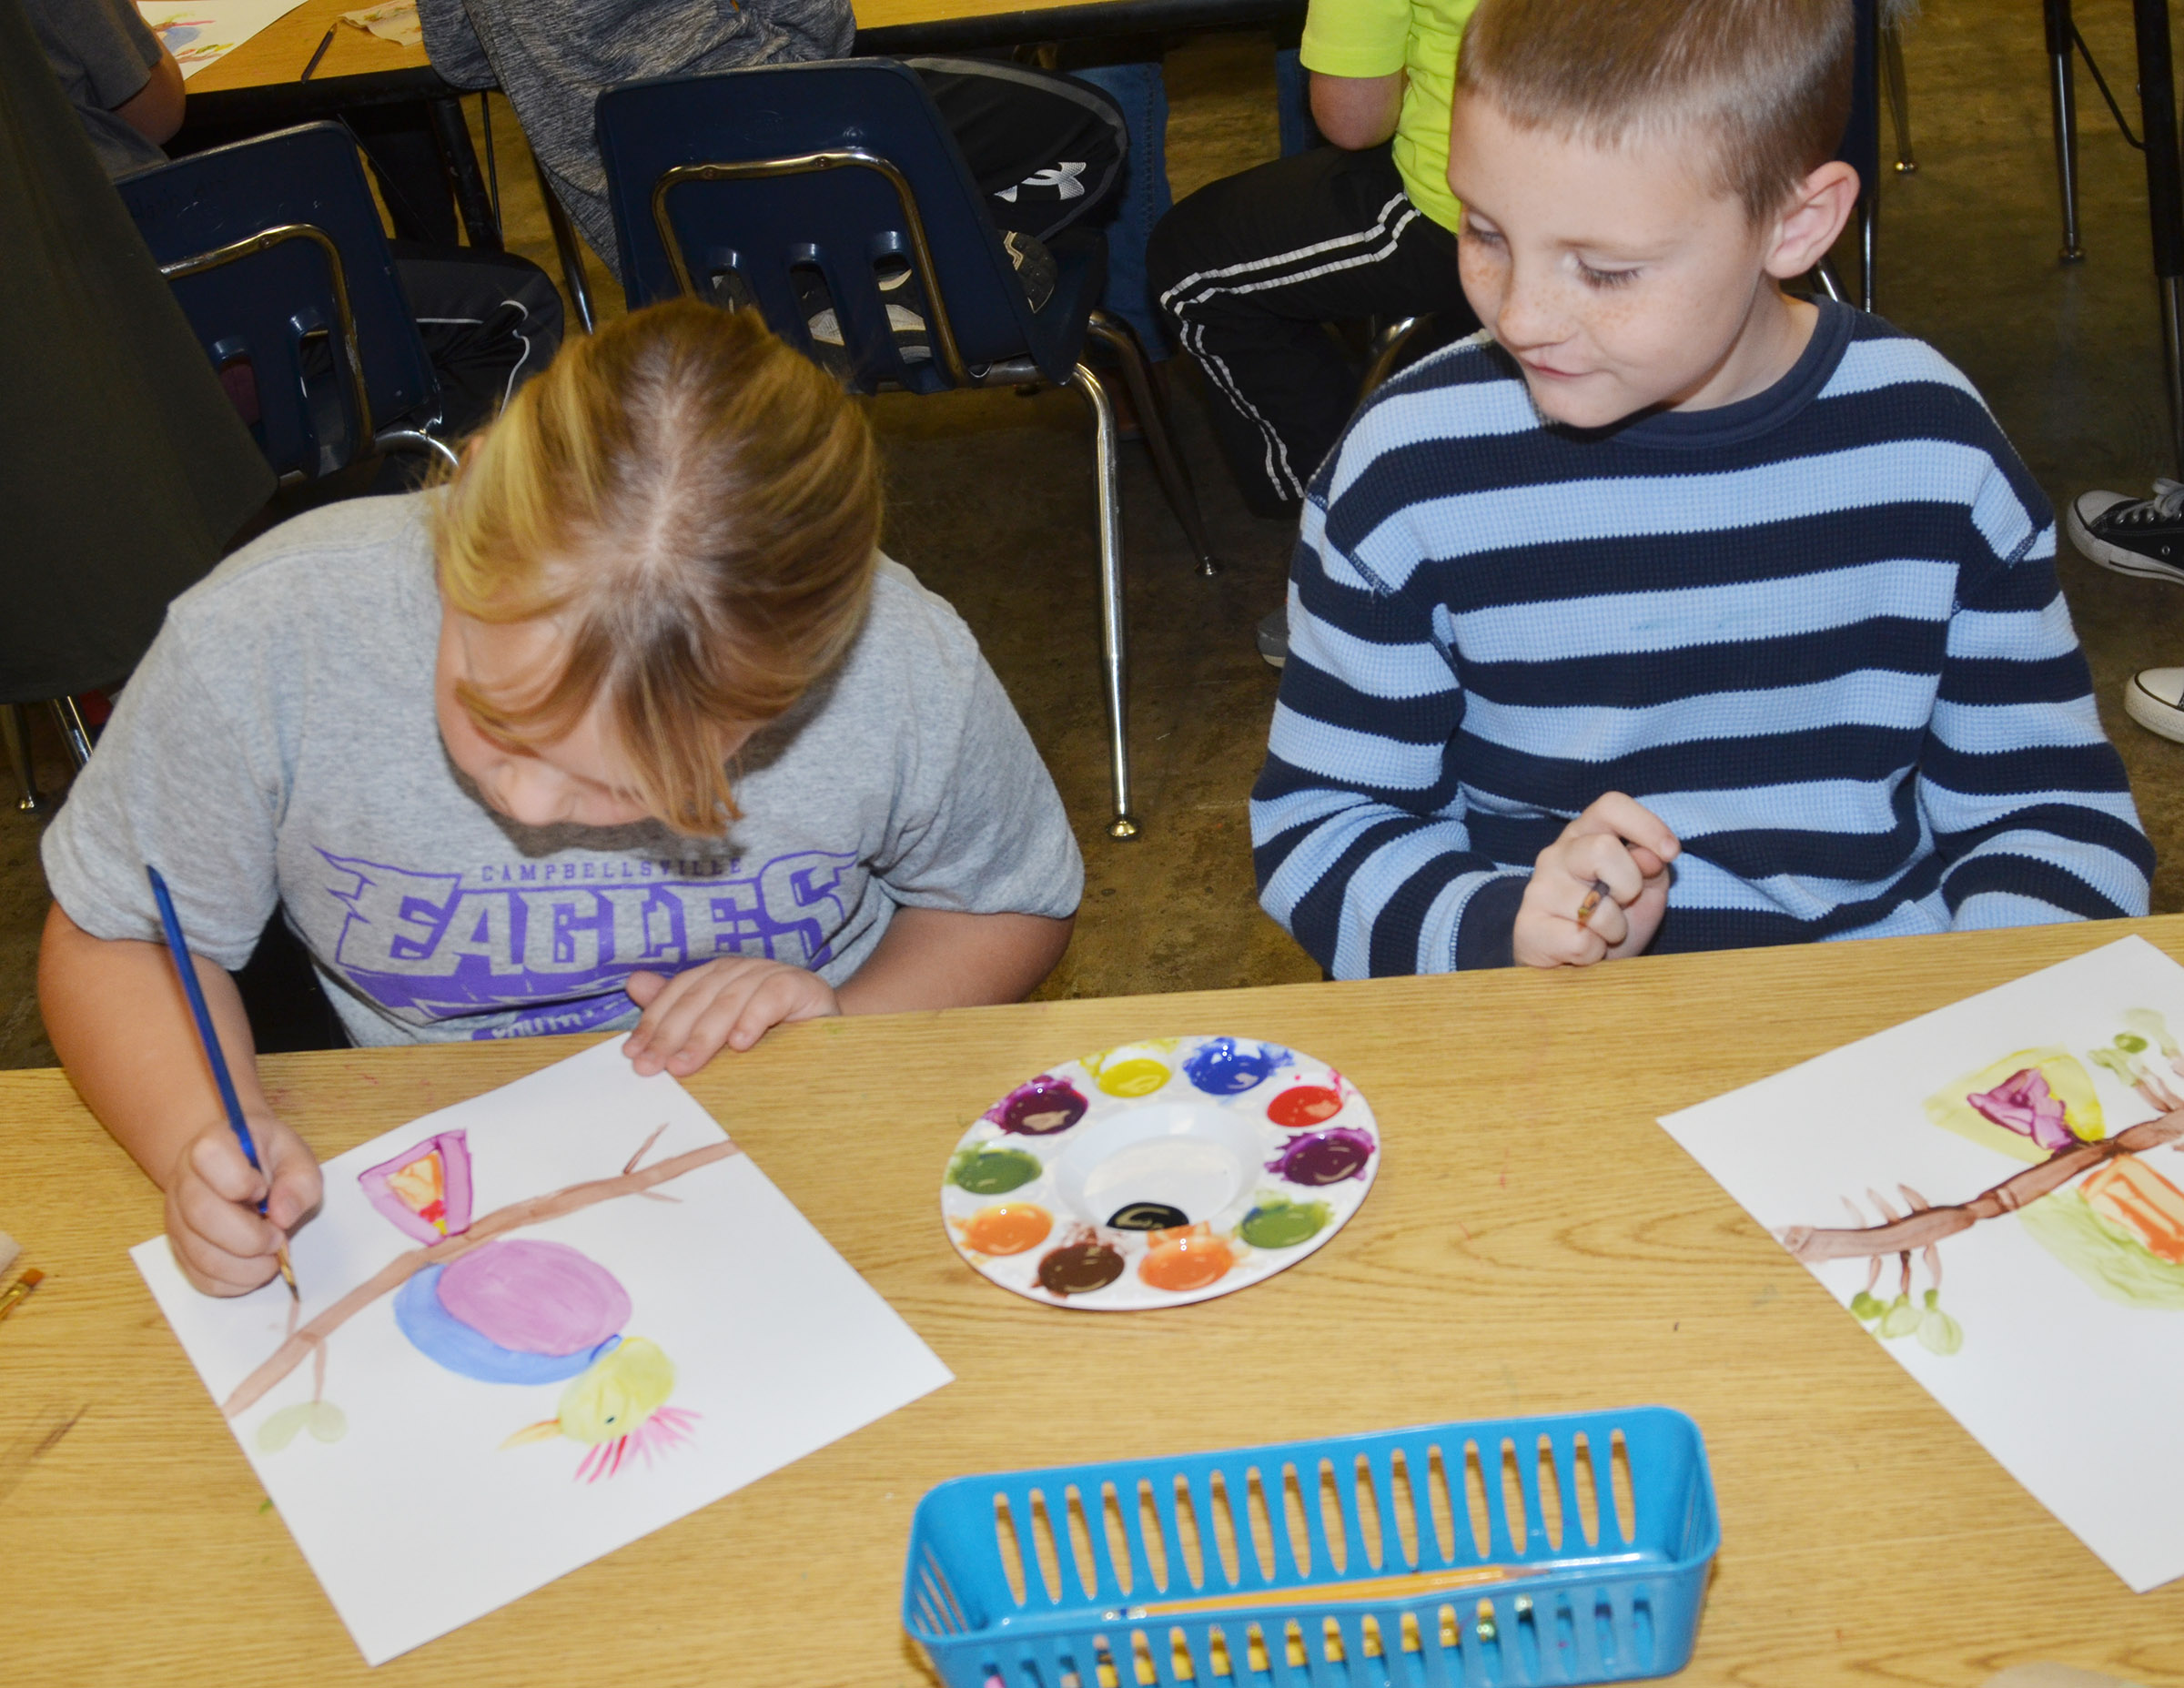 CES second-grader James Brunner watches as classmate Addysen England paints.